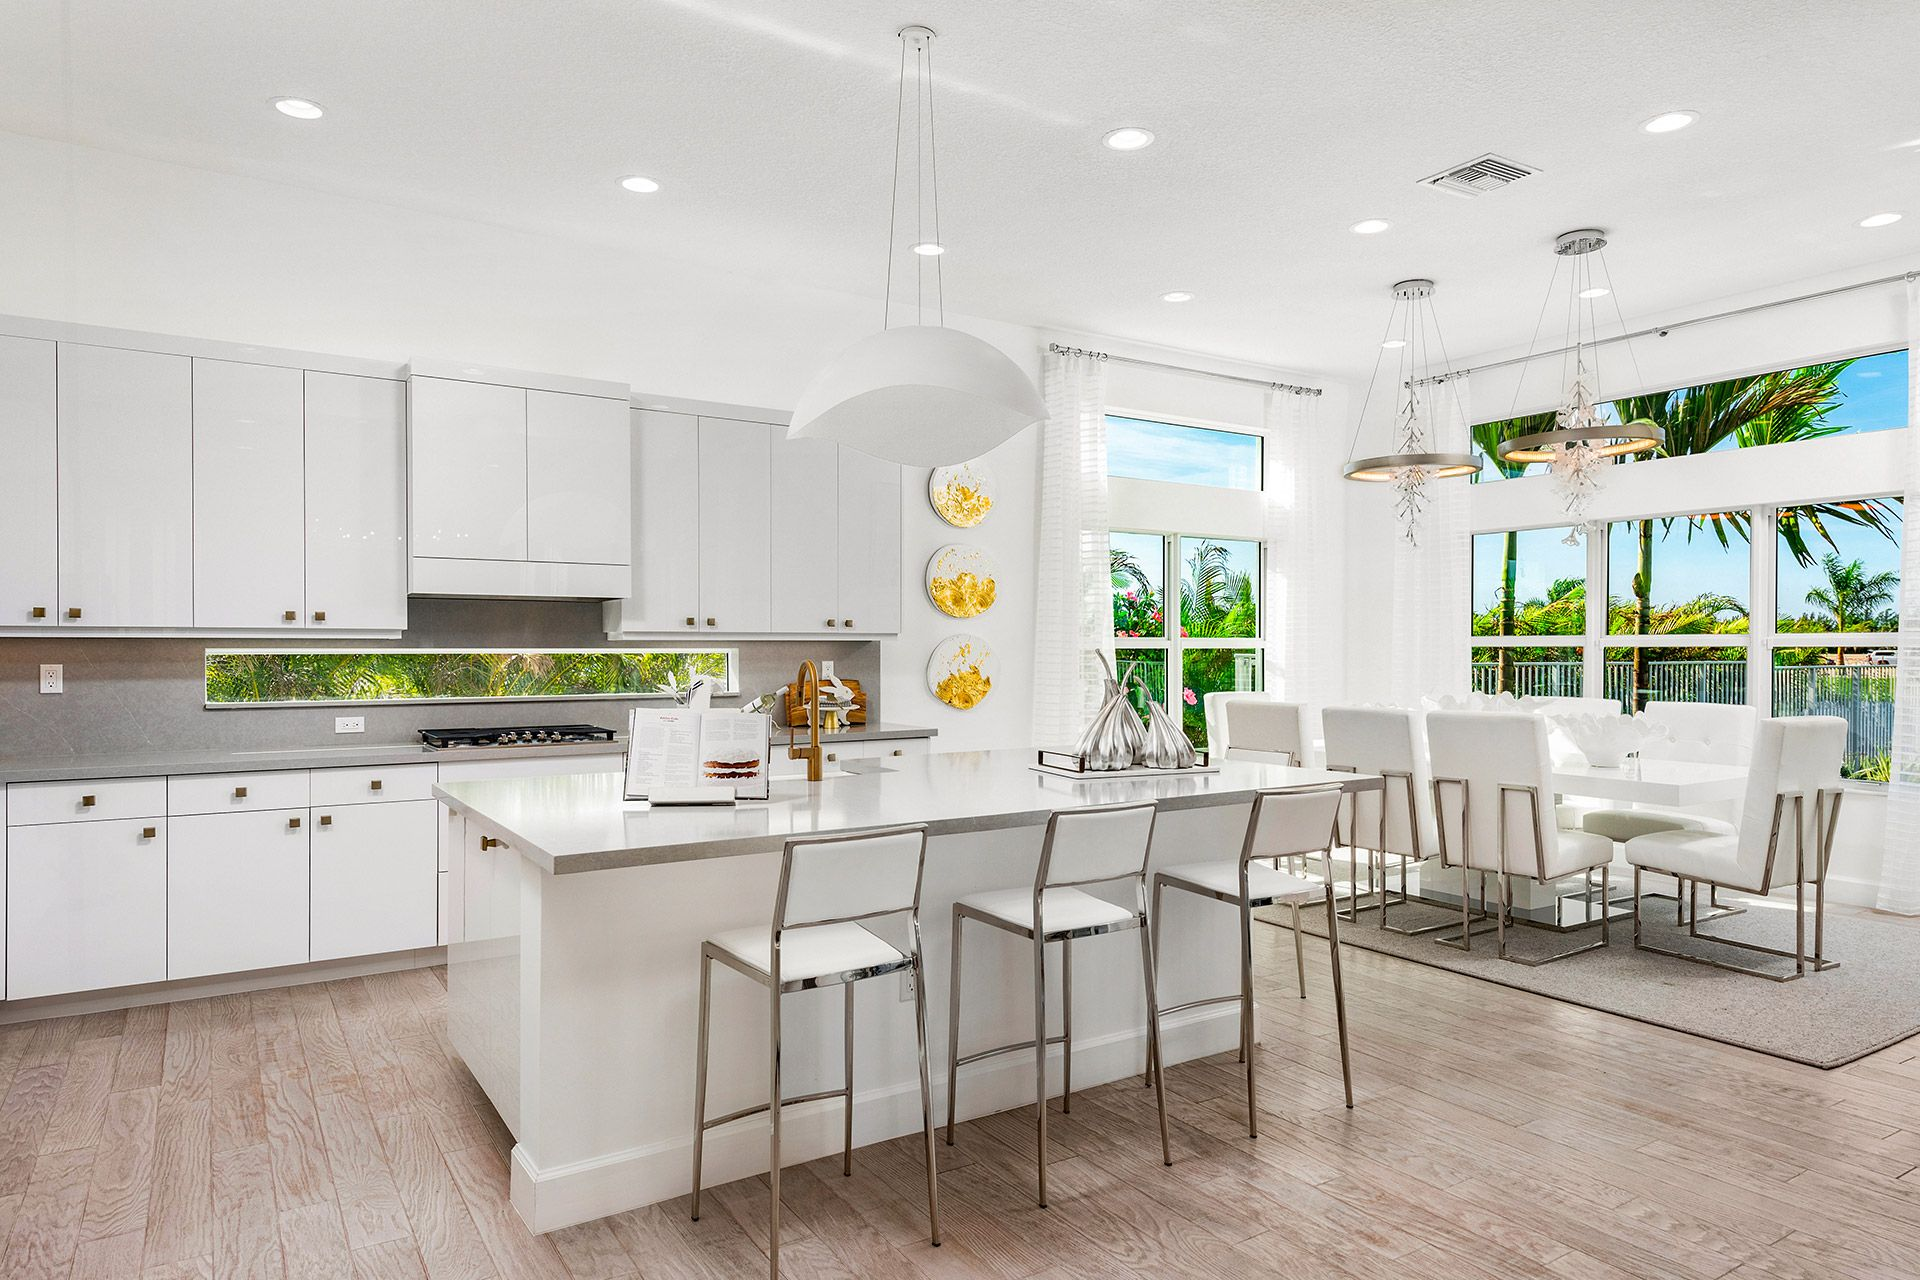 Kitchen featured in the Oceana By GL Homes in Naples, FL